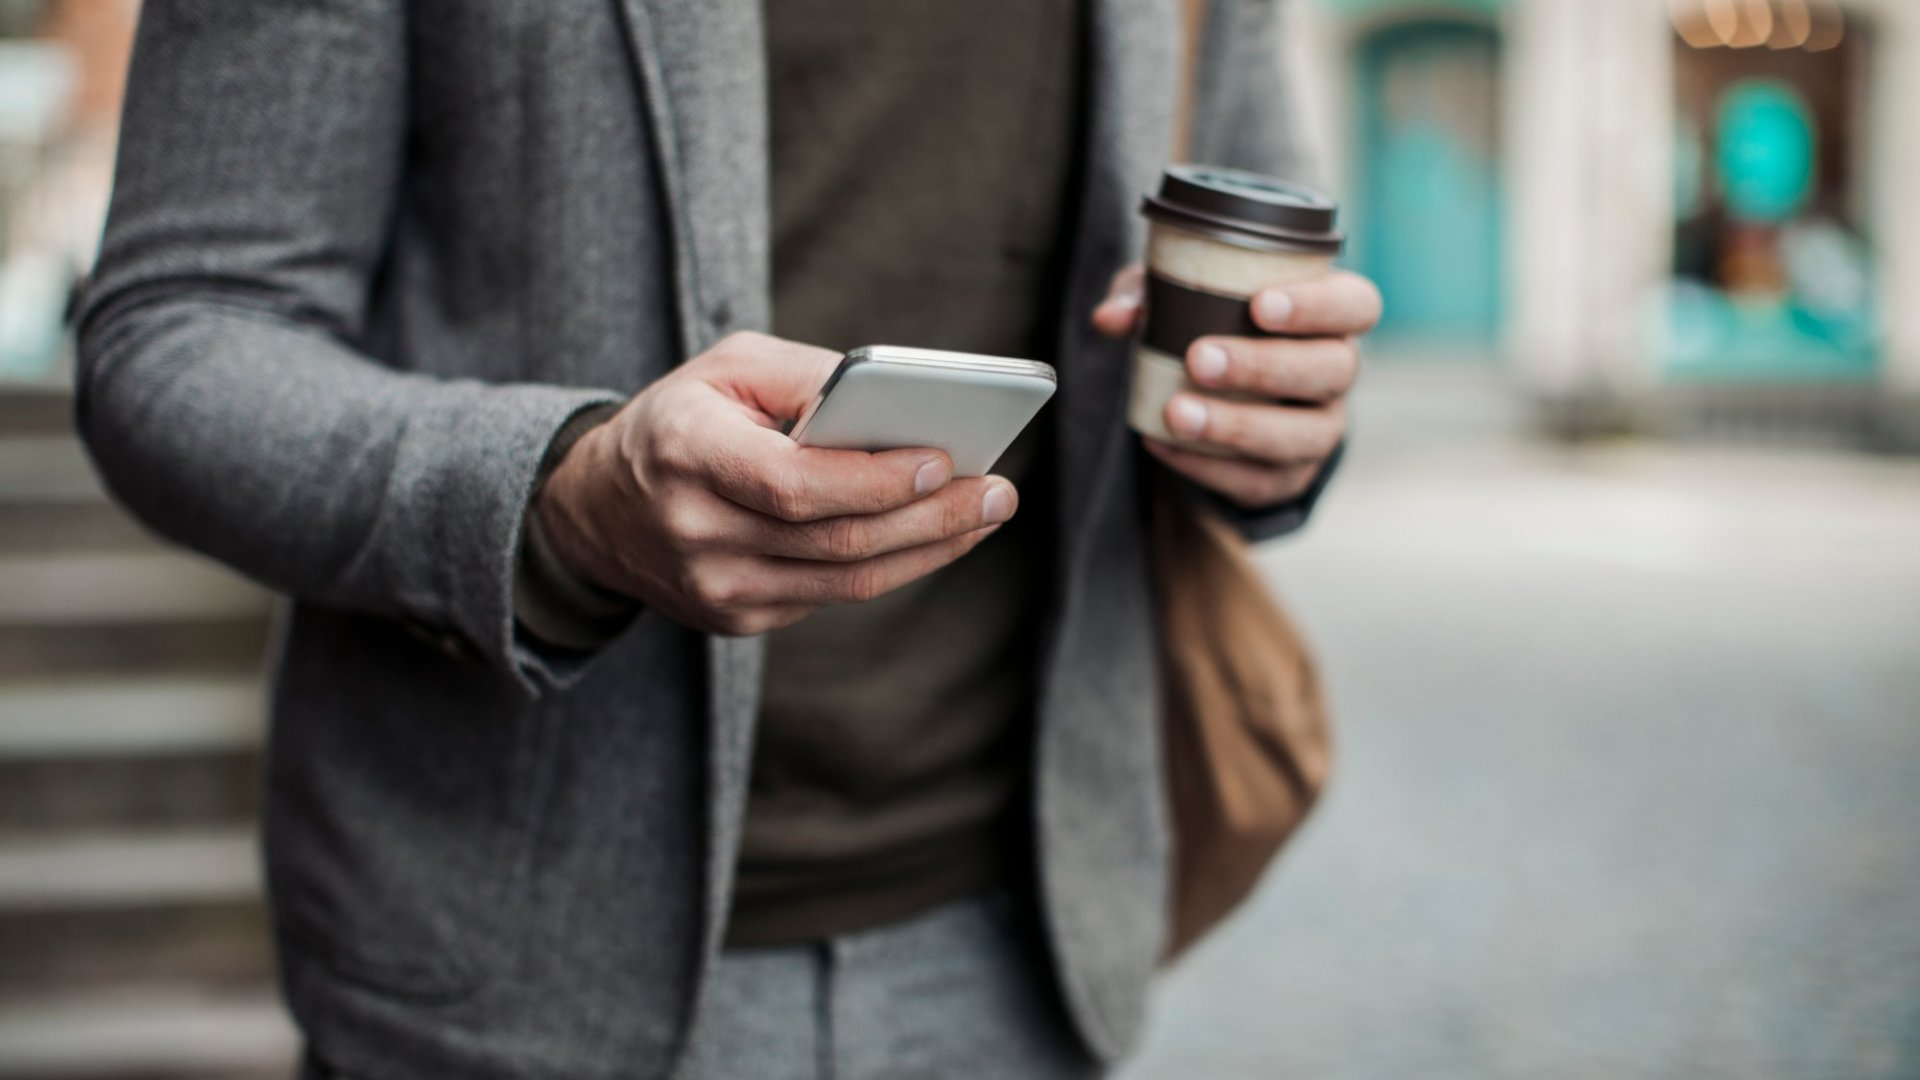 Break Up with Your Cell Phone Before It's Too Late. Here's How